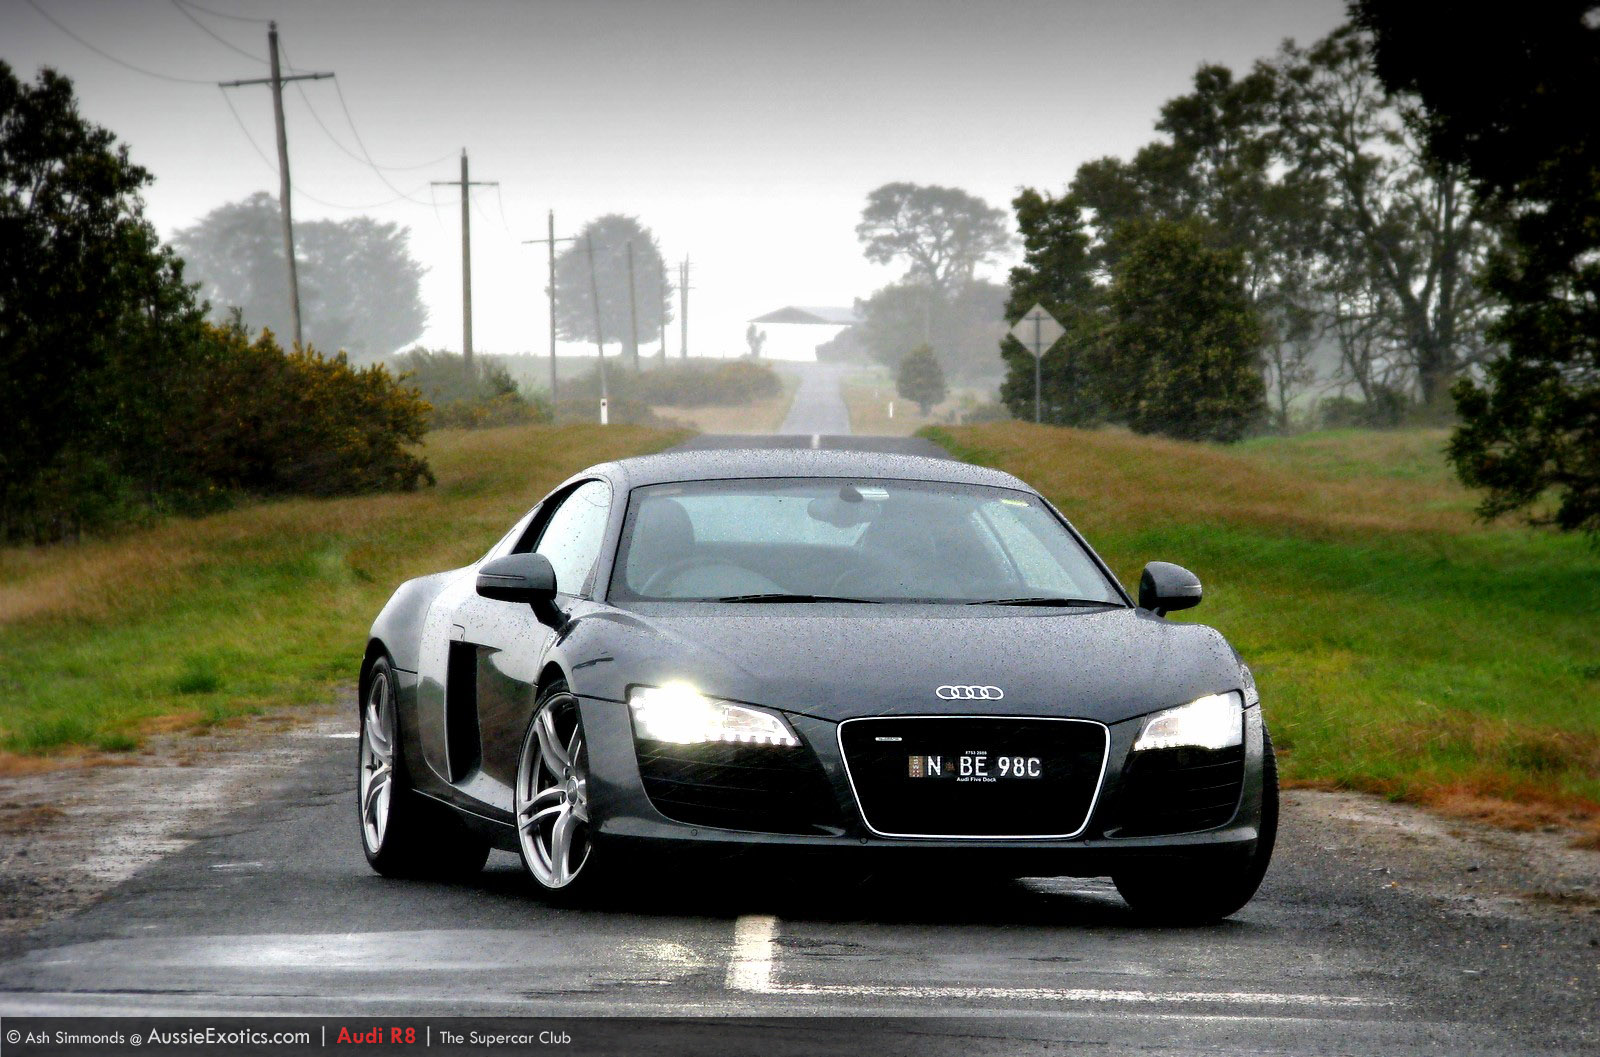 Audi R8 R Tronic Review And Photos Sports Prestige Cars In